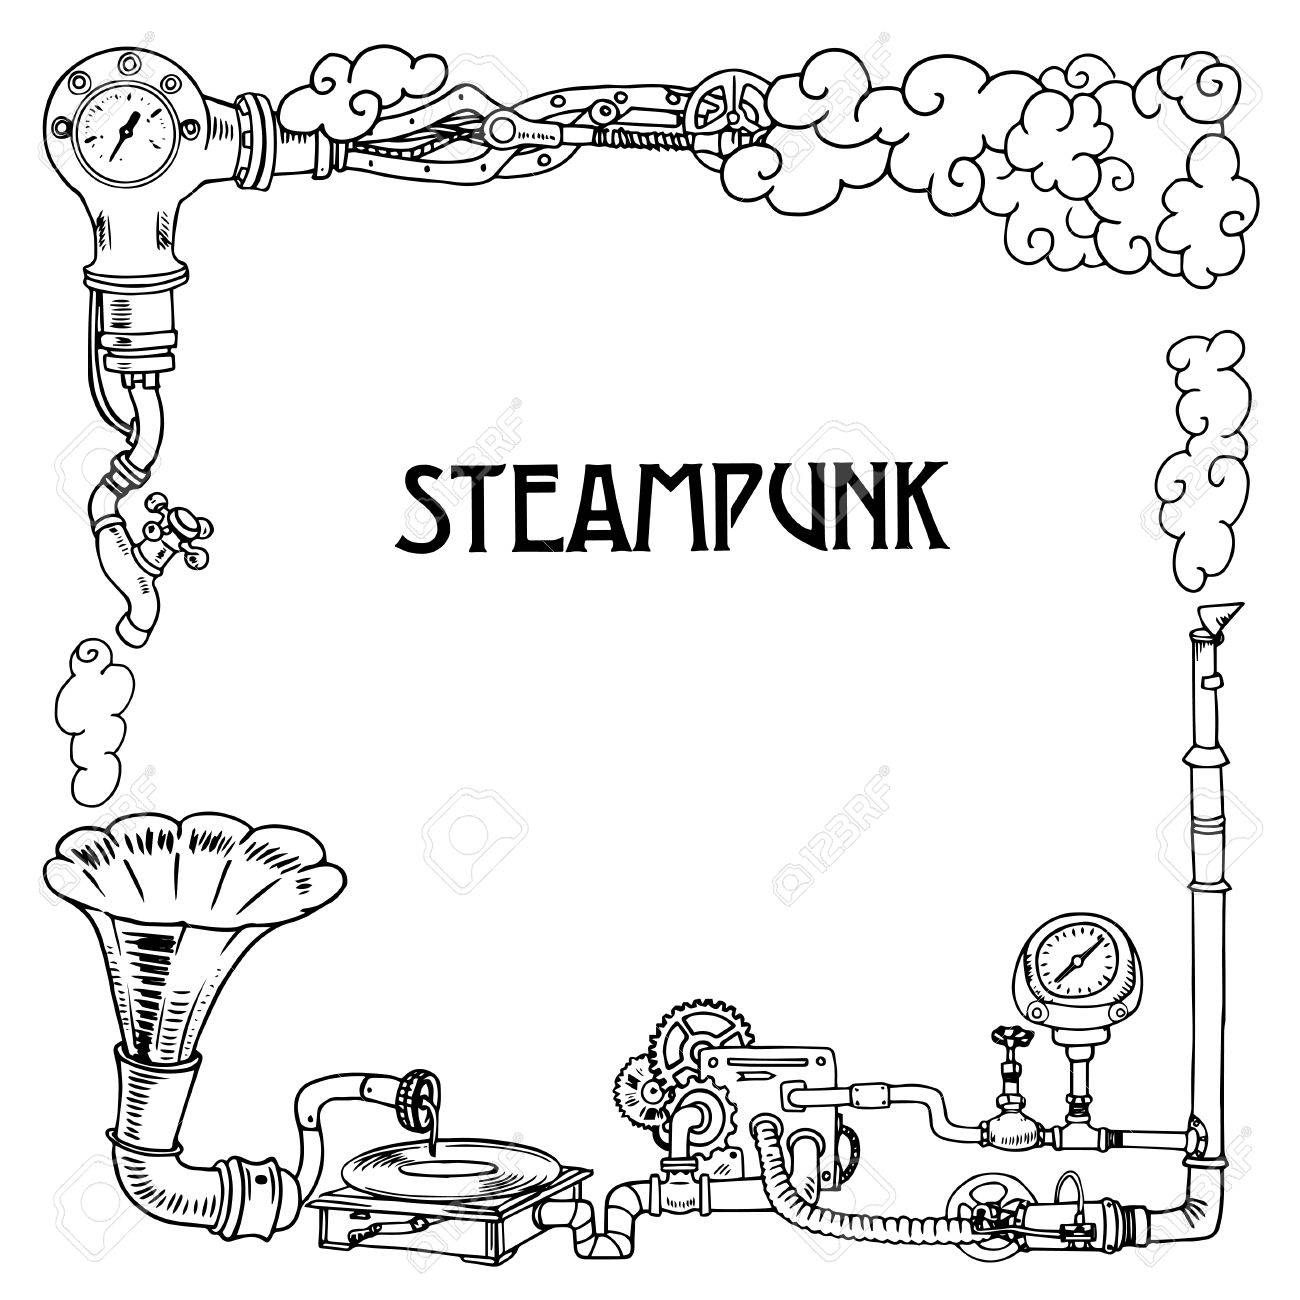 Steampunk frame with industrial machines gears chains, gramophone and technical elements, illustration - 55077358